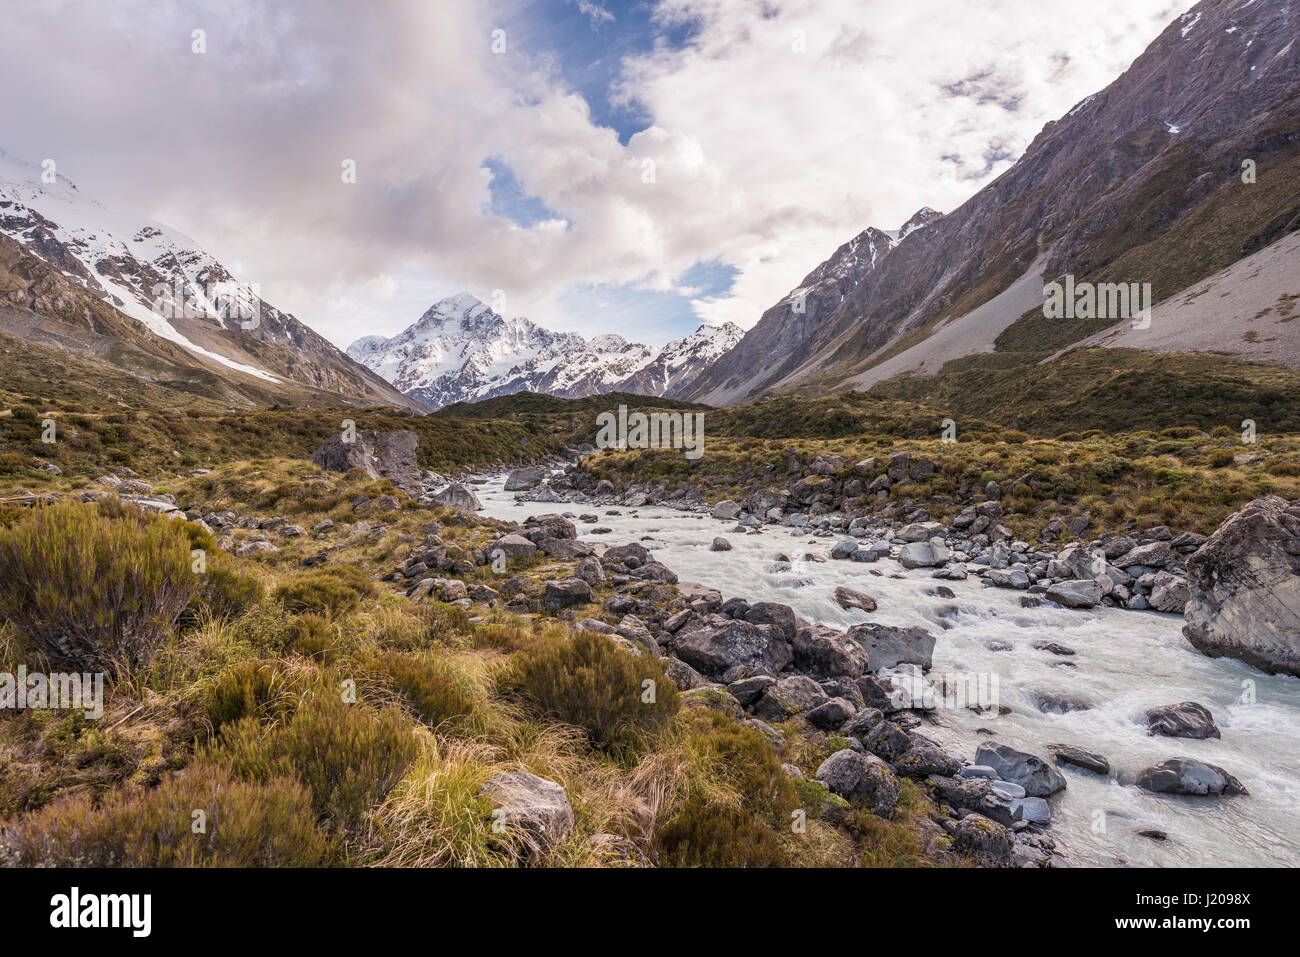 River flowing through valley, Hooker River, at back Mount Cook, Hooker Valley, Mount Cook National Park, Southern - Stock Image